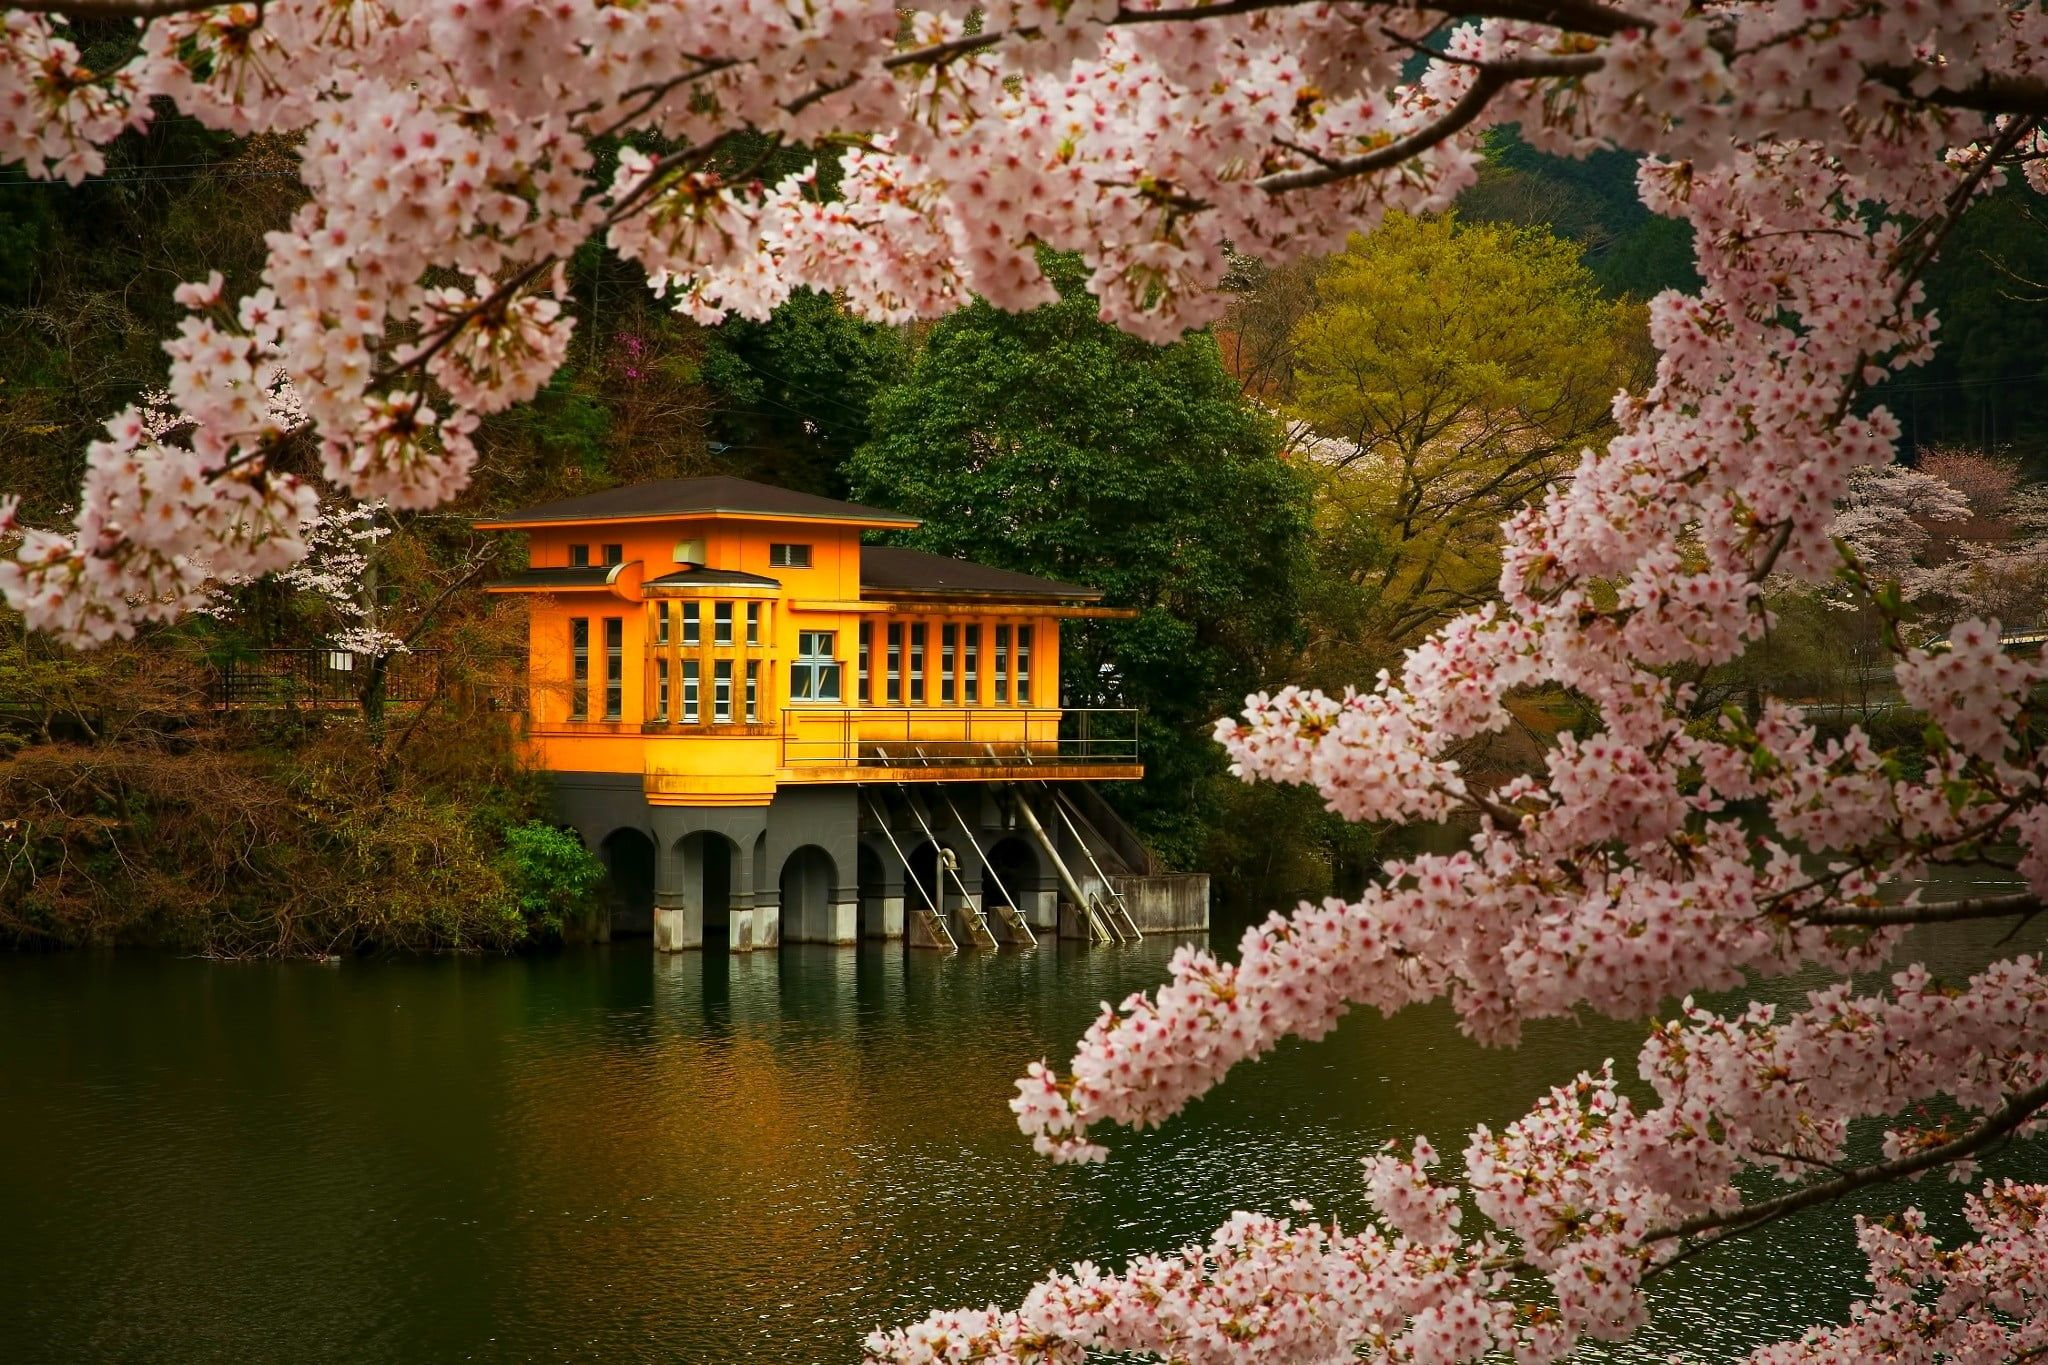 Brown And Orange House Cherry Blossom Trees Spring Lake Flowers Japan Nature Landsc Spring Desktop Wallpaper Orange House Desktop Wallpapers Backgrounds